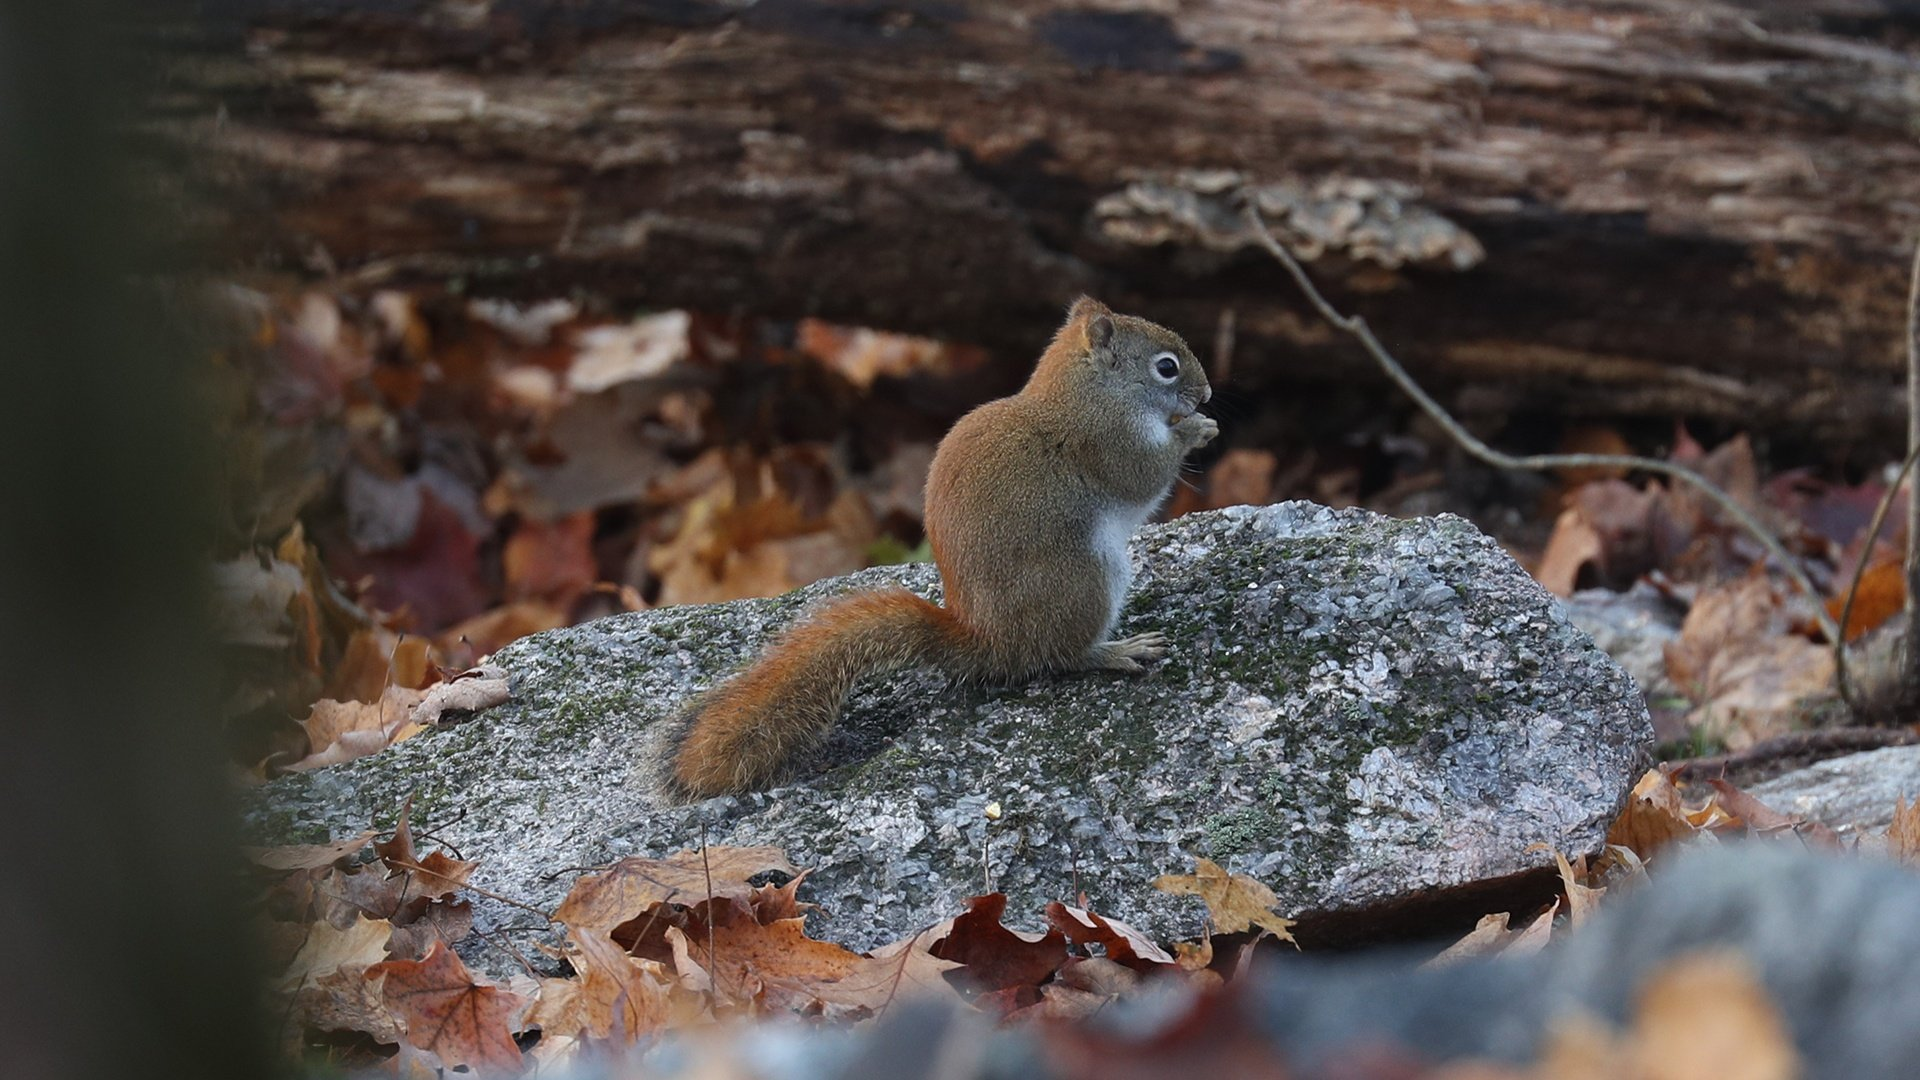 https://0901.nccdn.net/4_2/000/000/038/2d3/Gravenhurst-Fall-2016-Red-Squirell-A-1920x1080.jpg